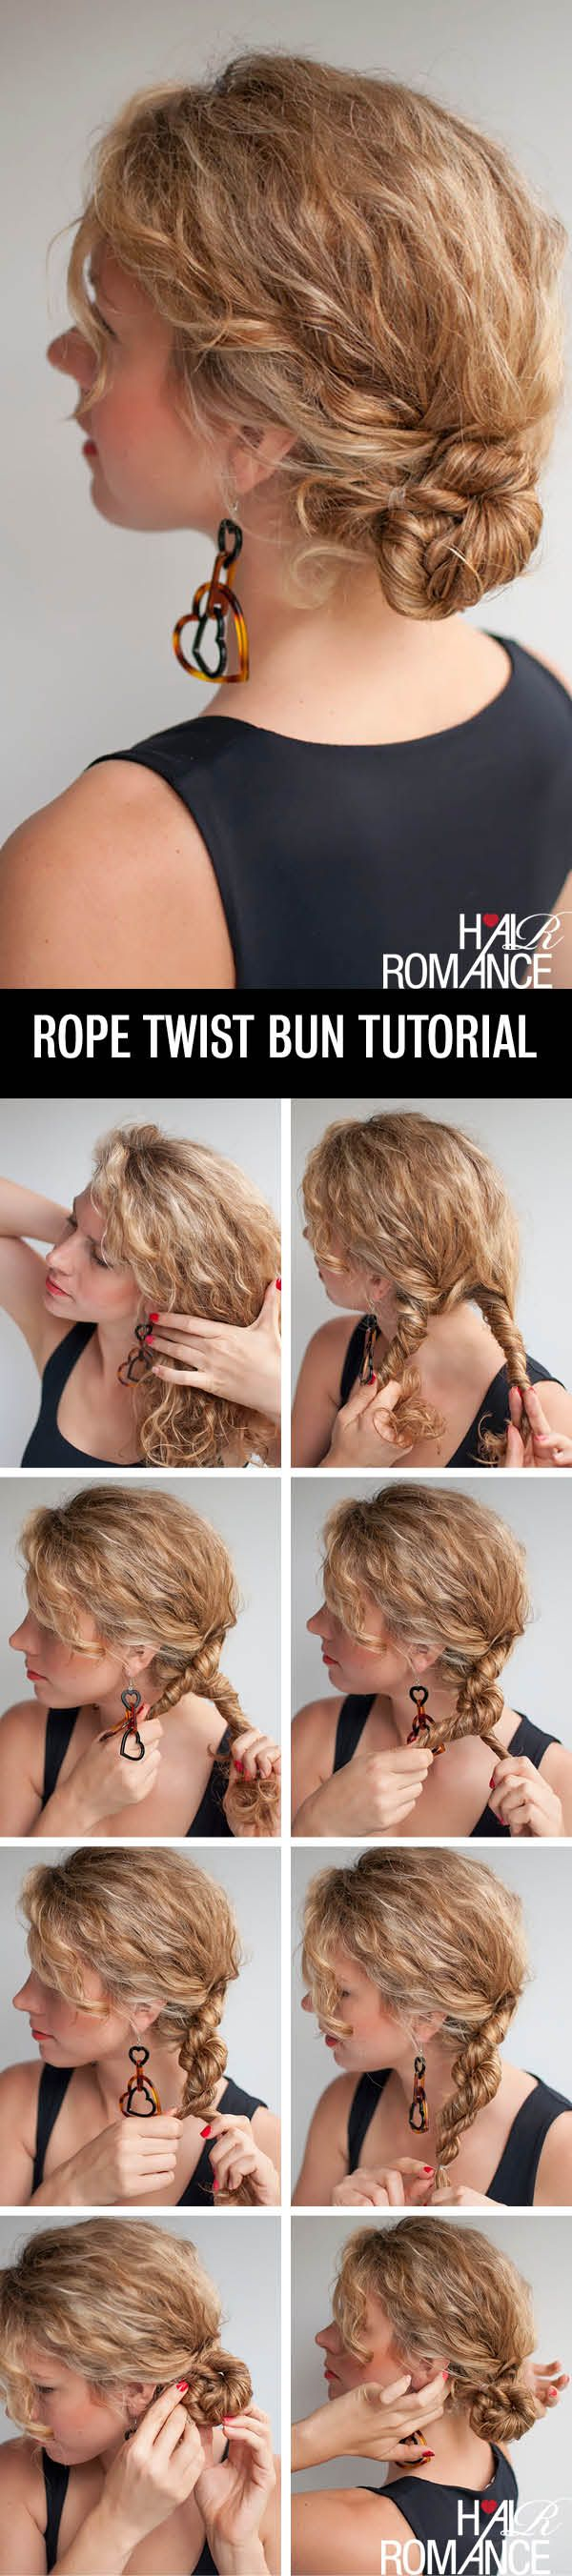 Enjoyable 1000 Ideas About Curly Bun Hairstyles On Pinterest Curly Bun Hairstyles For Women Draintrainus